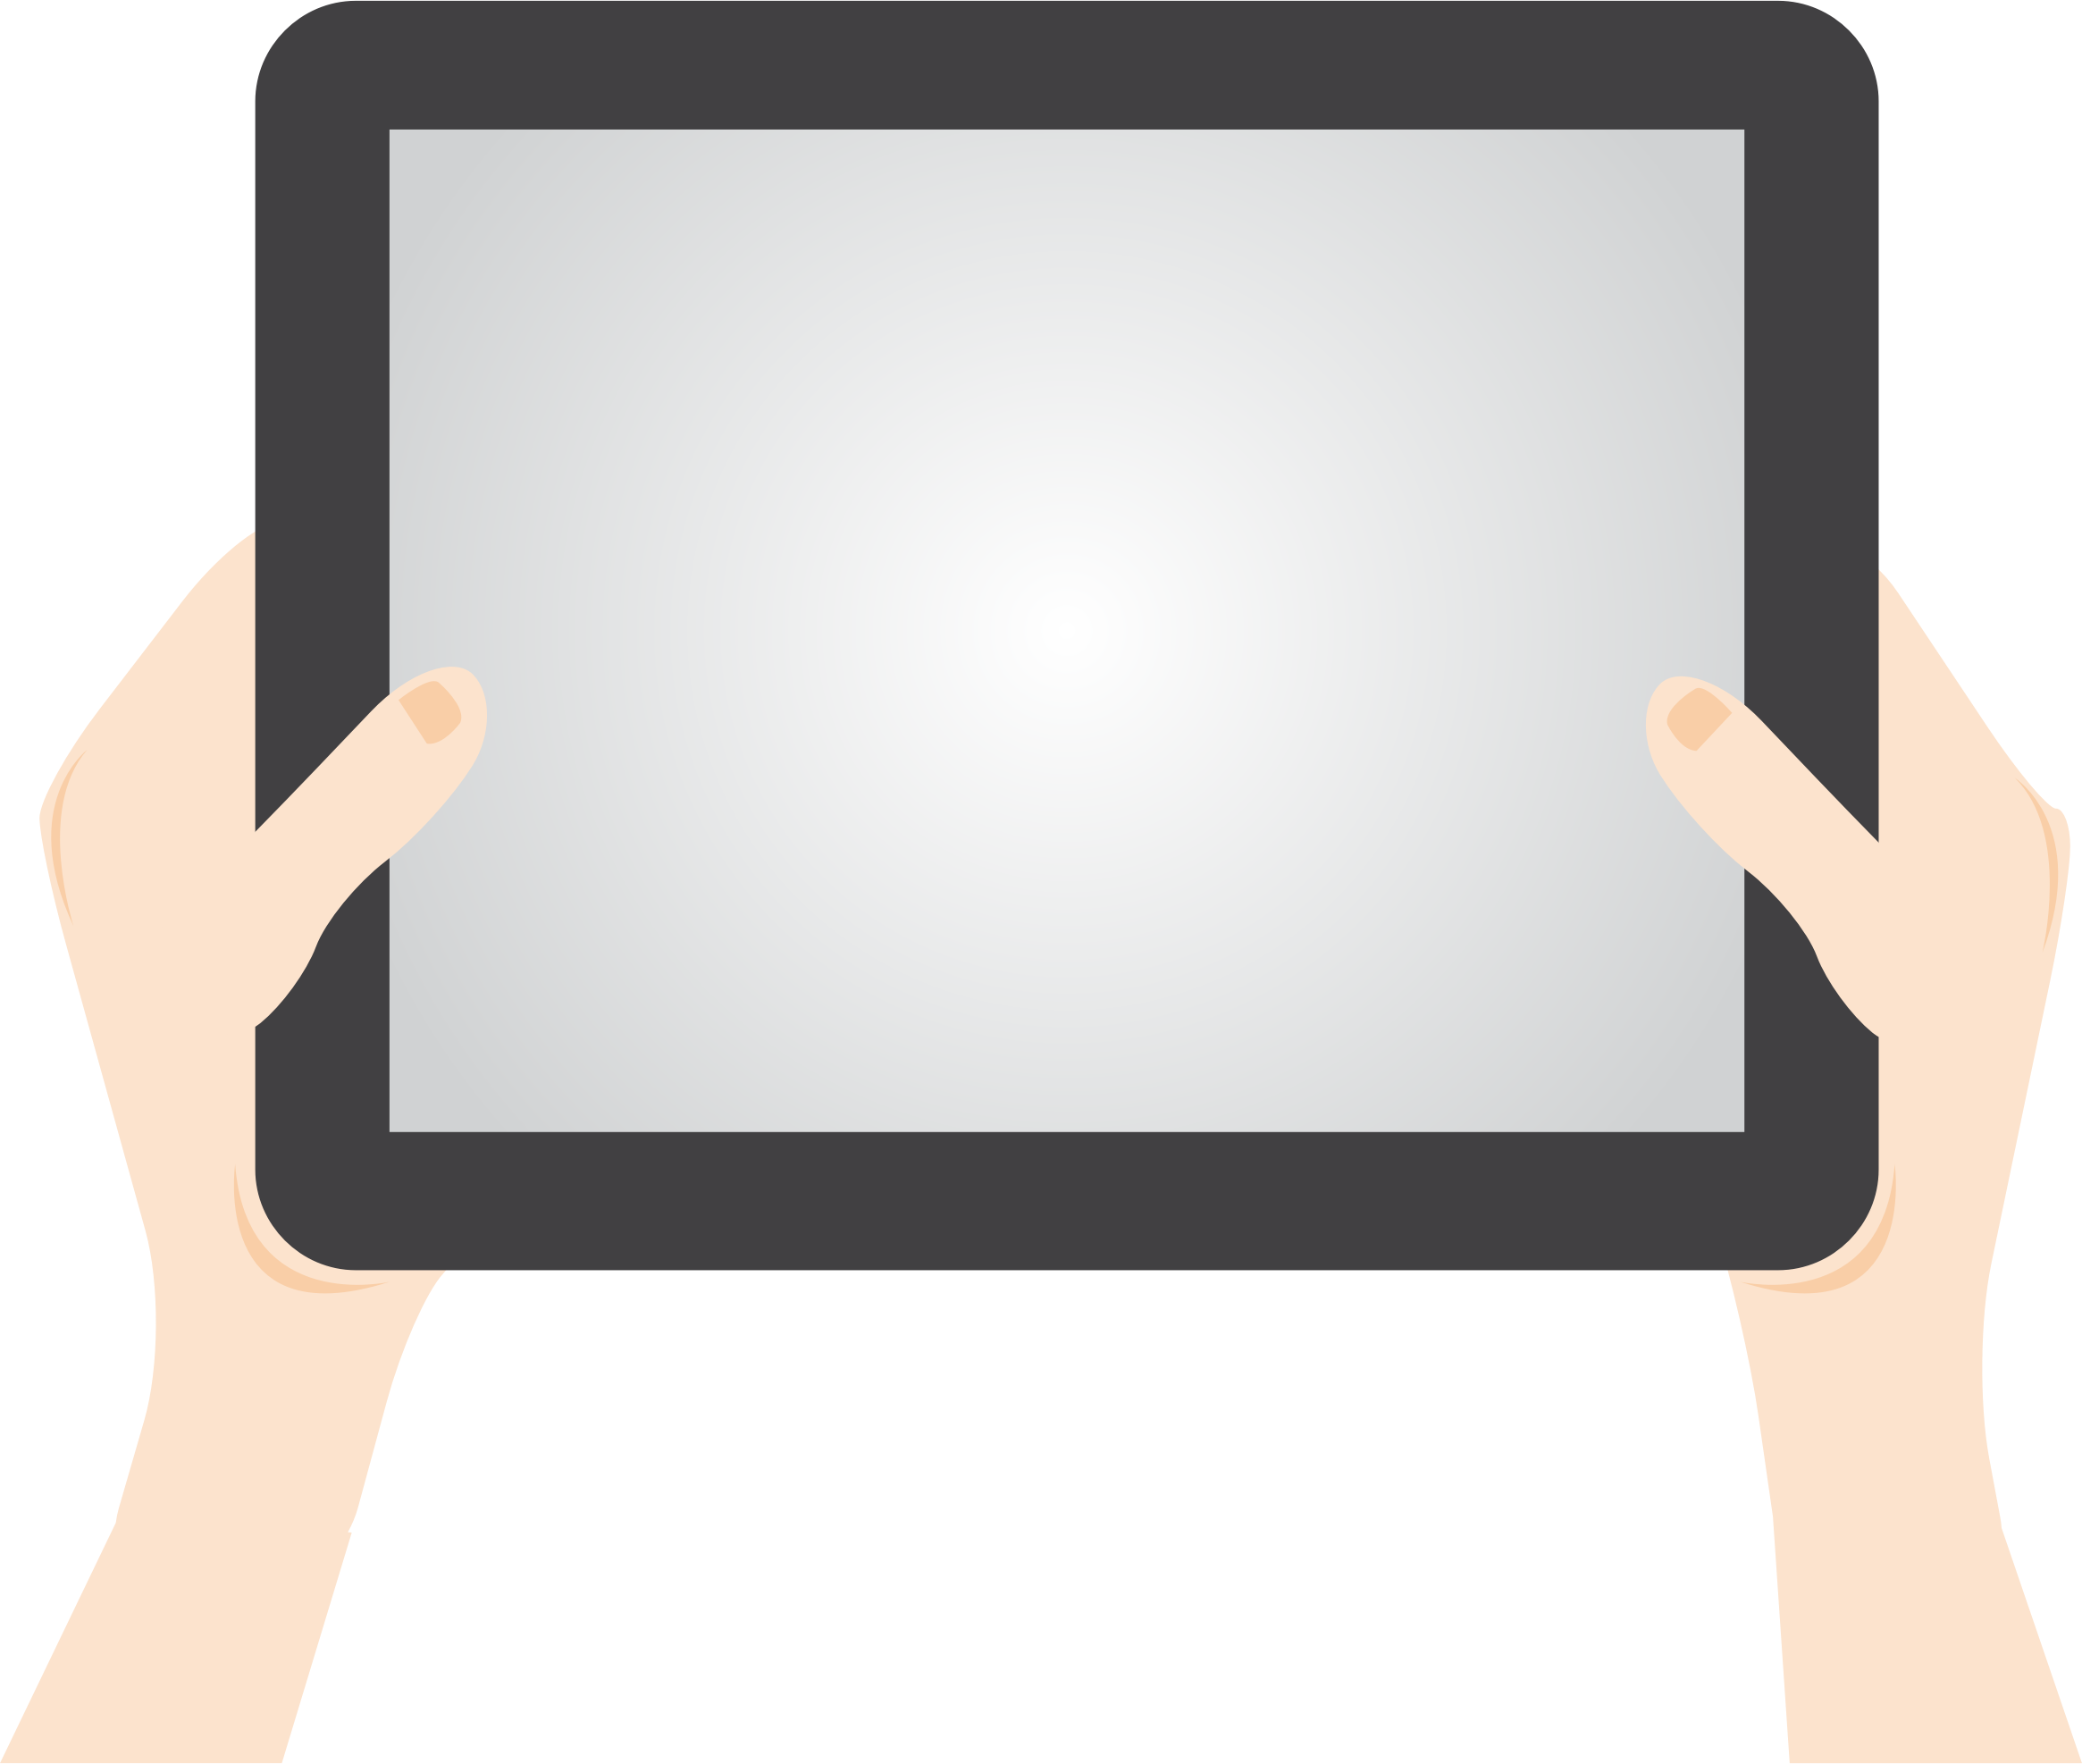 png library library Tablet clipart. Person holding big image